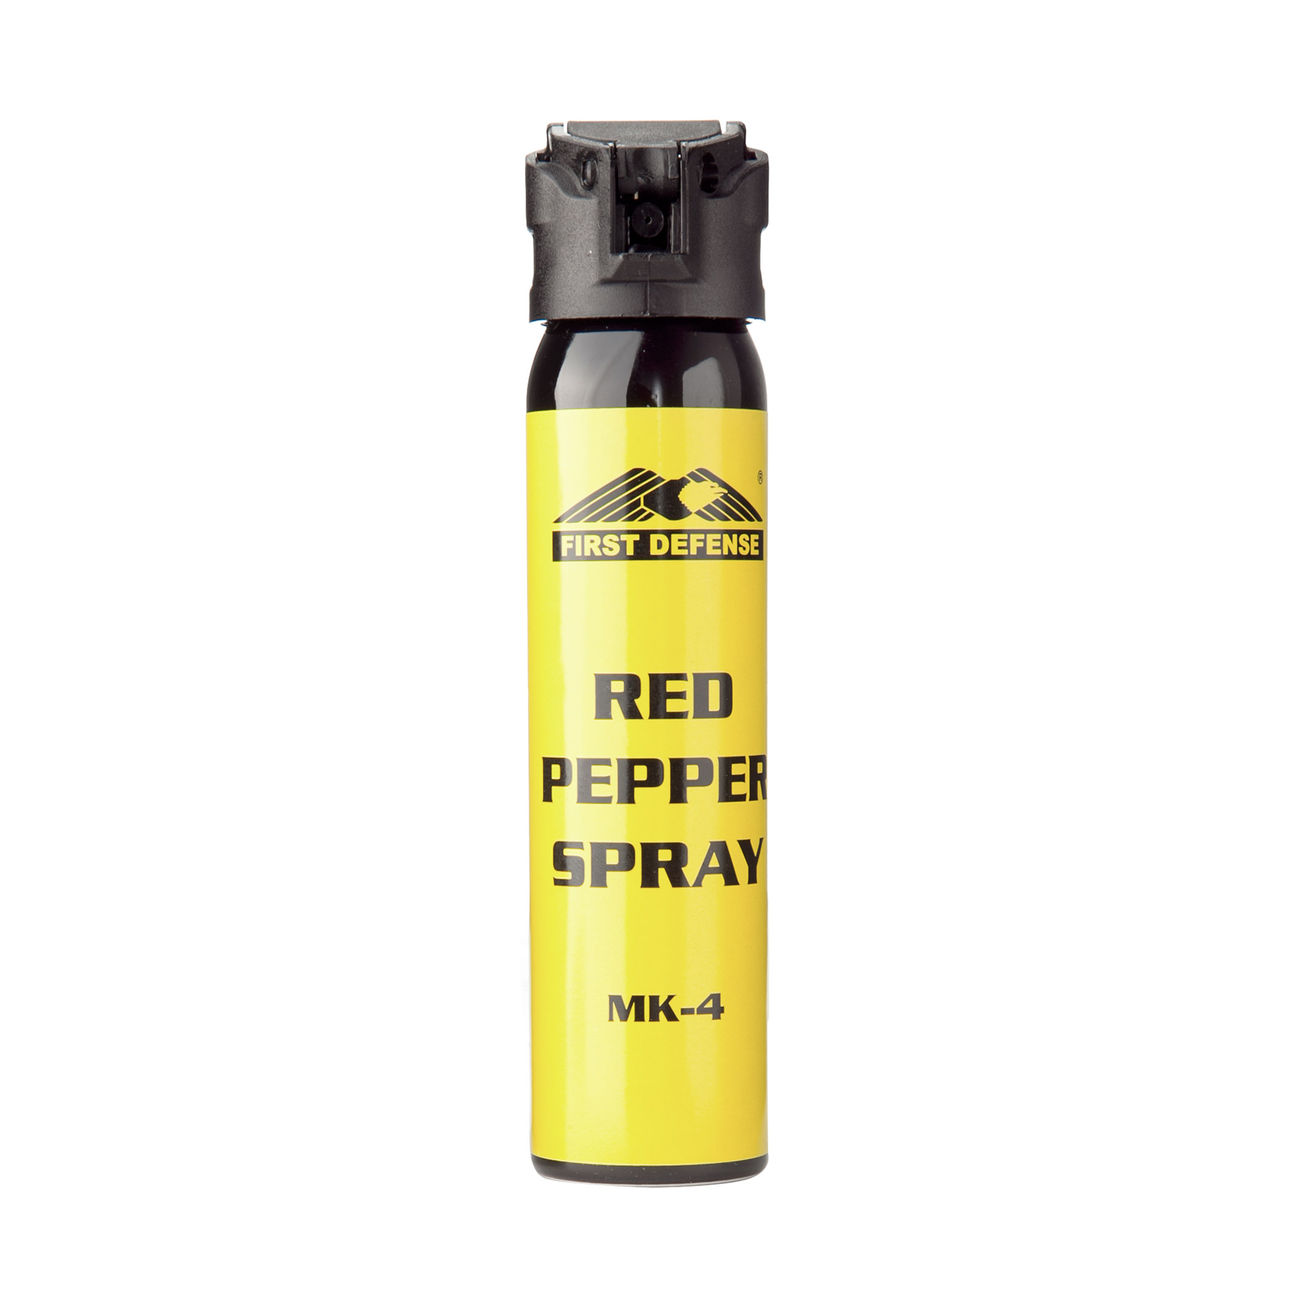 First Defense Red Pepper Pfefferspray MK-4, 75ml hochkonzentriert 0